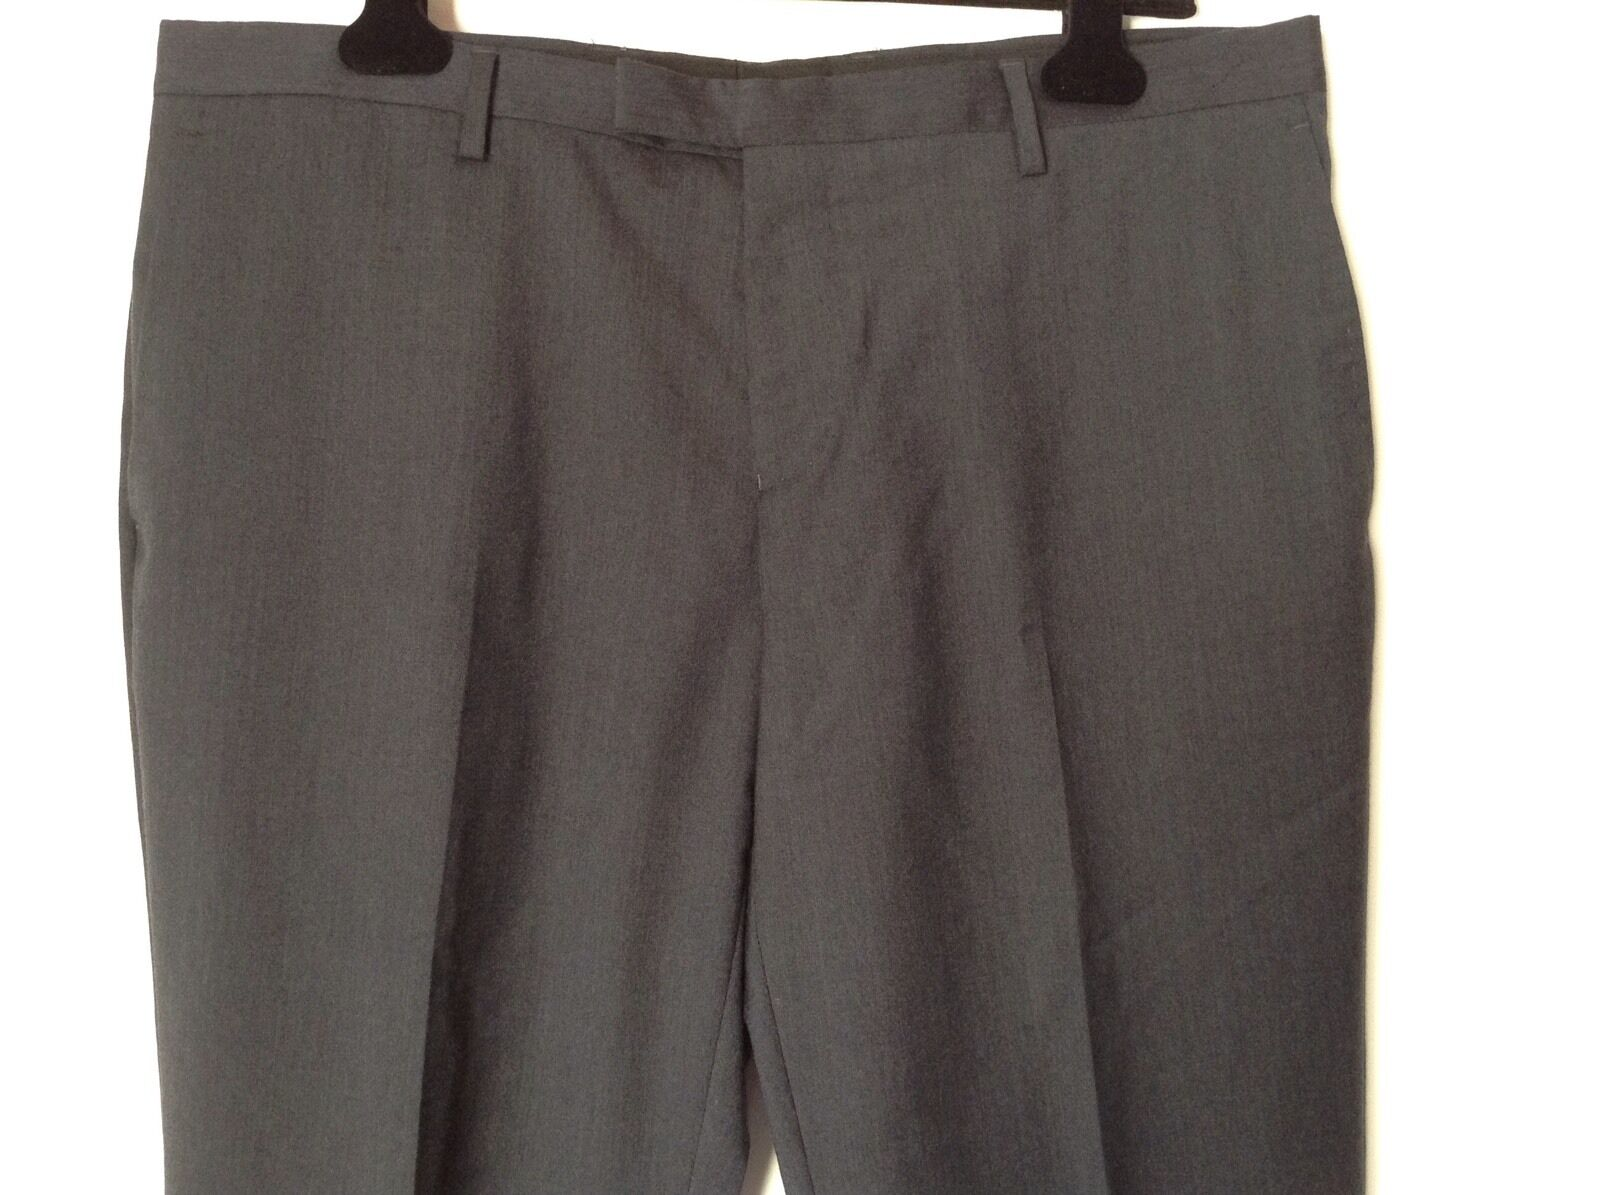 BNWTT 100% auth by DKNY mens Elegant, tailored trousers. 48 cm. RRP